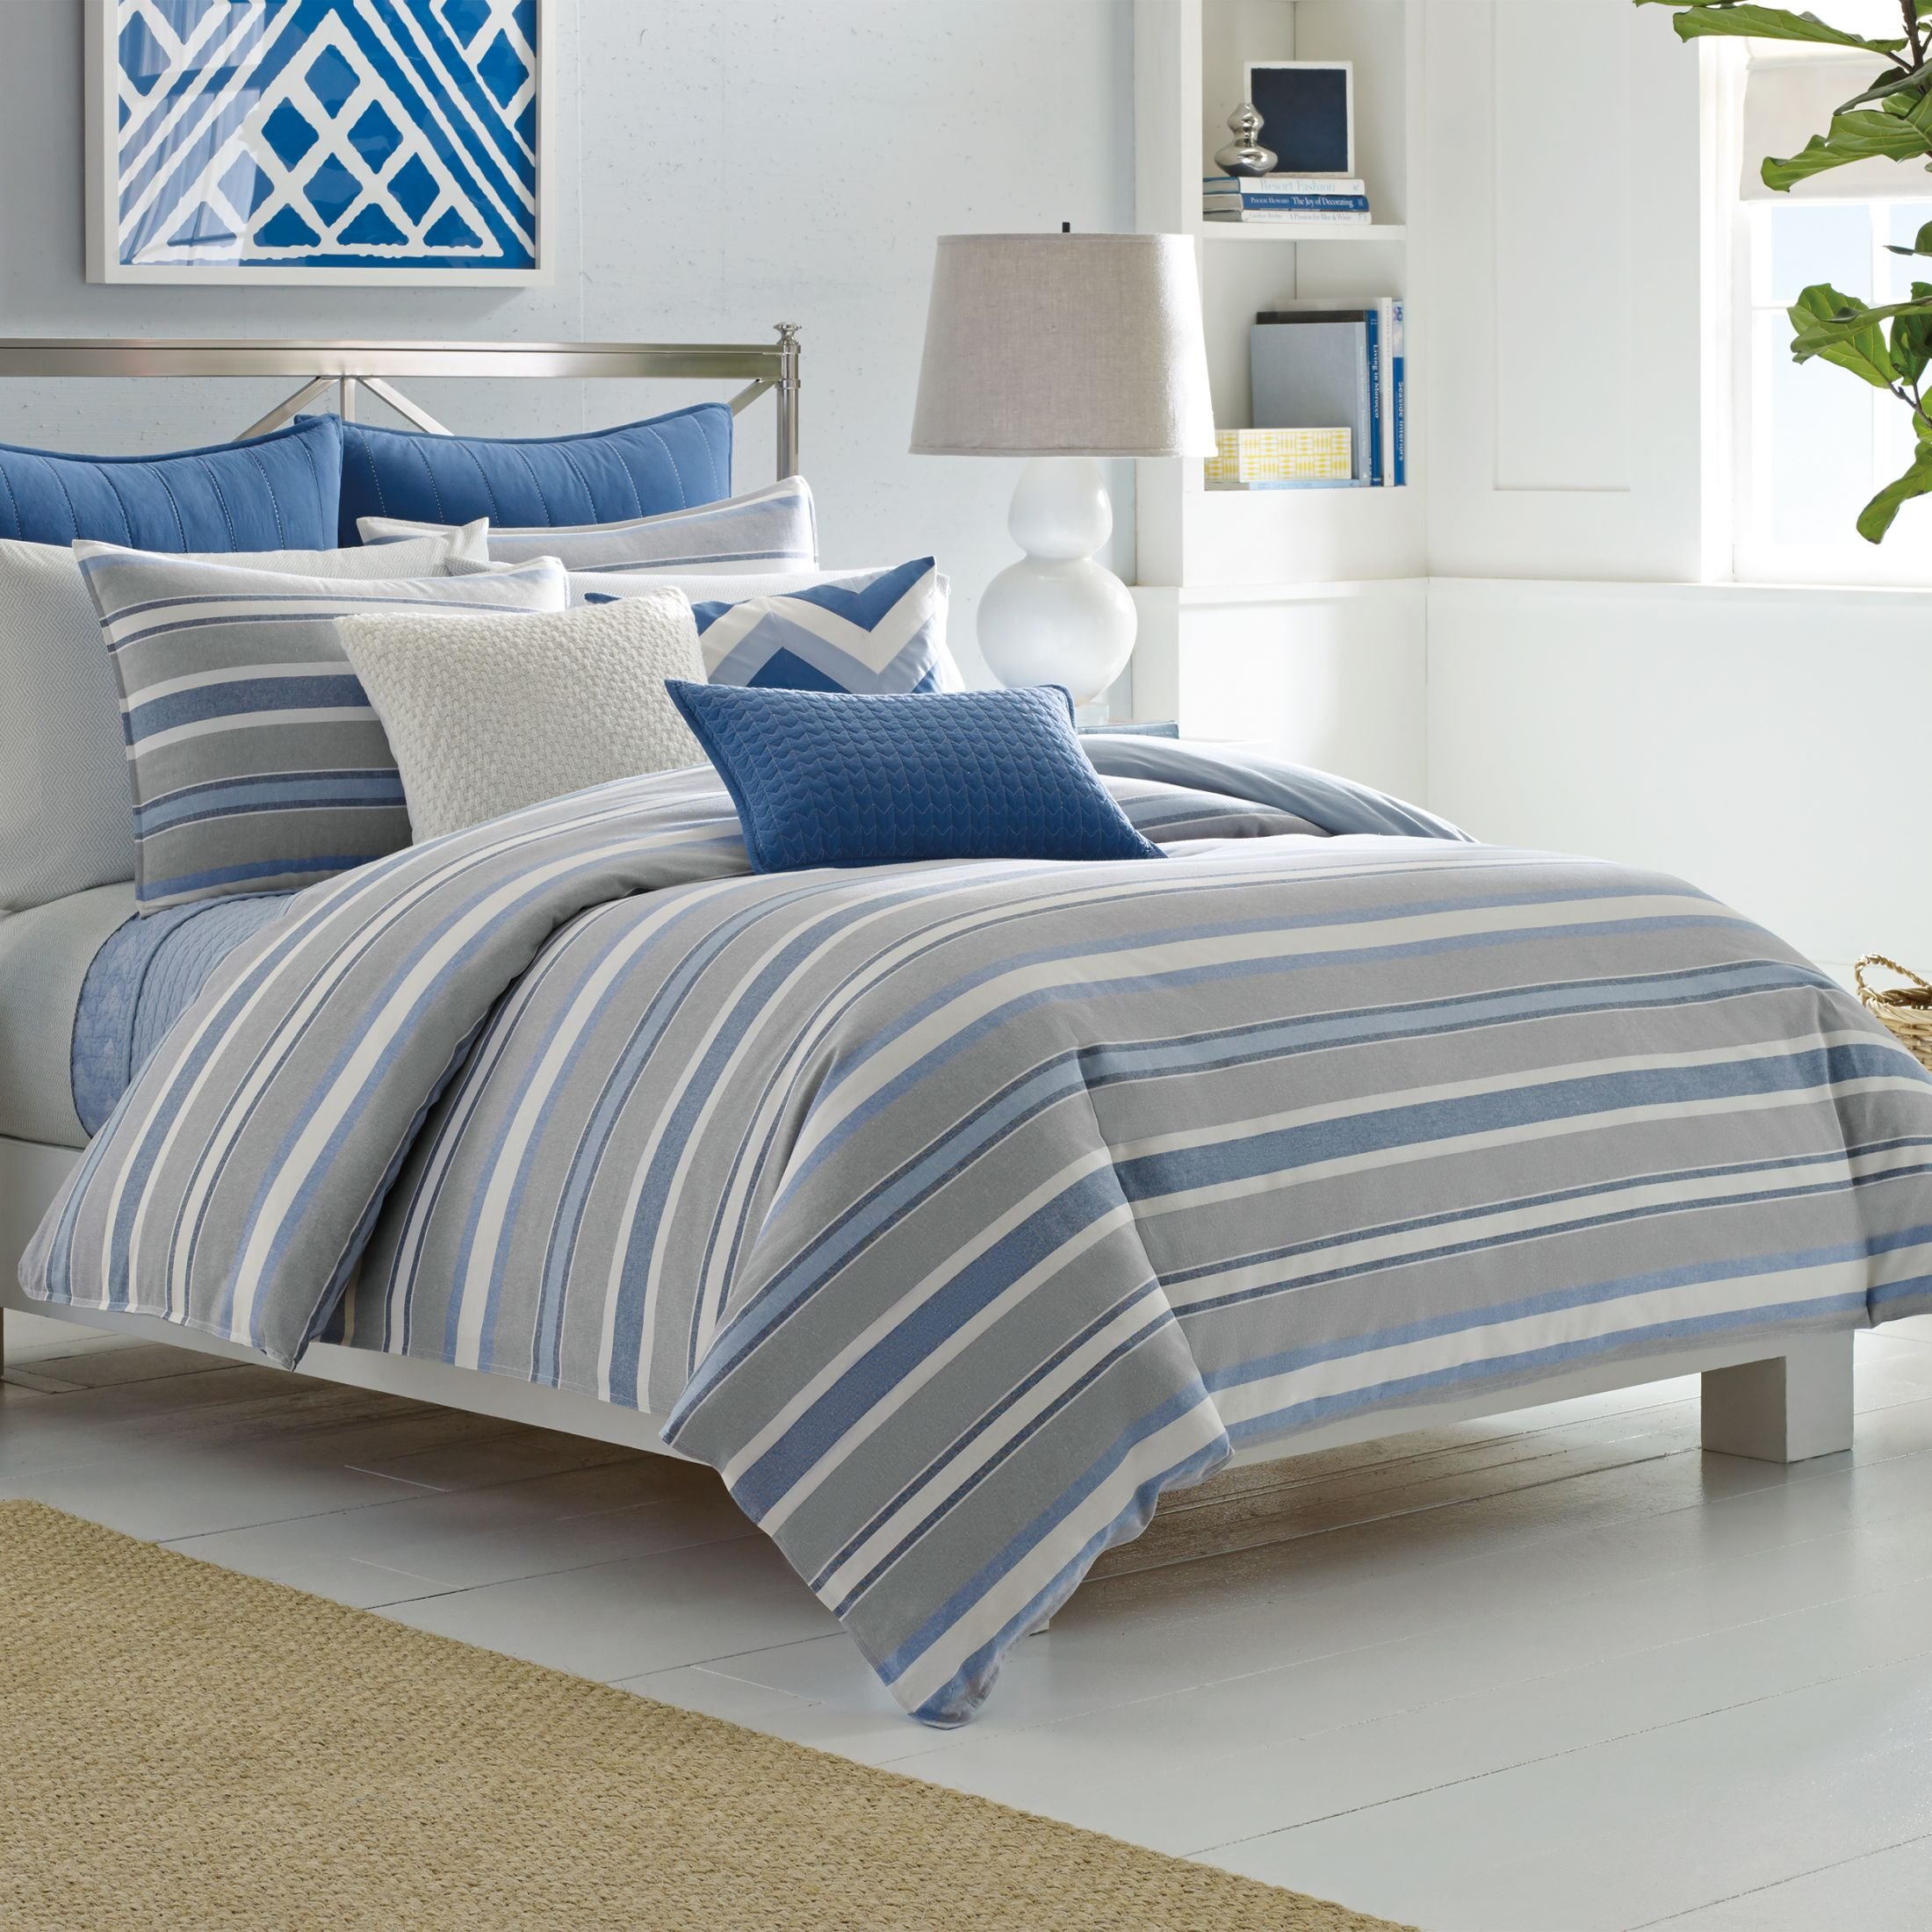 Incredible comforters sets for bedroom design with queen comforter sets